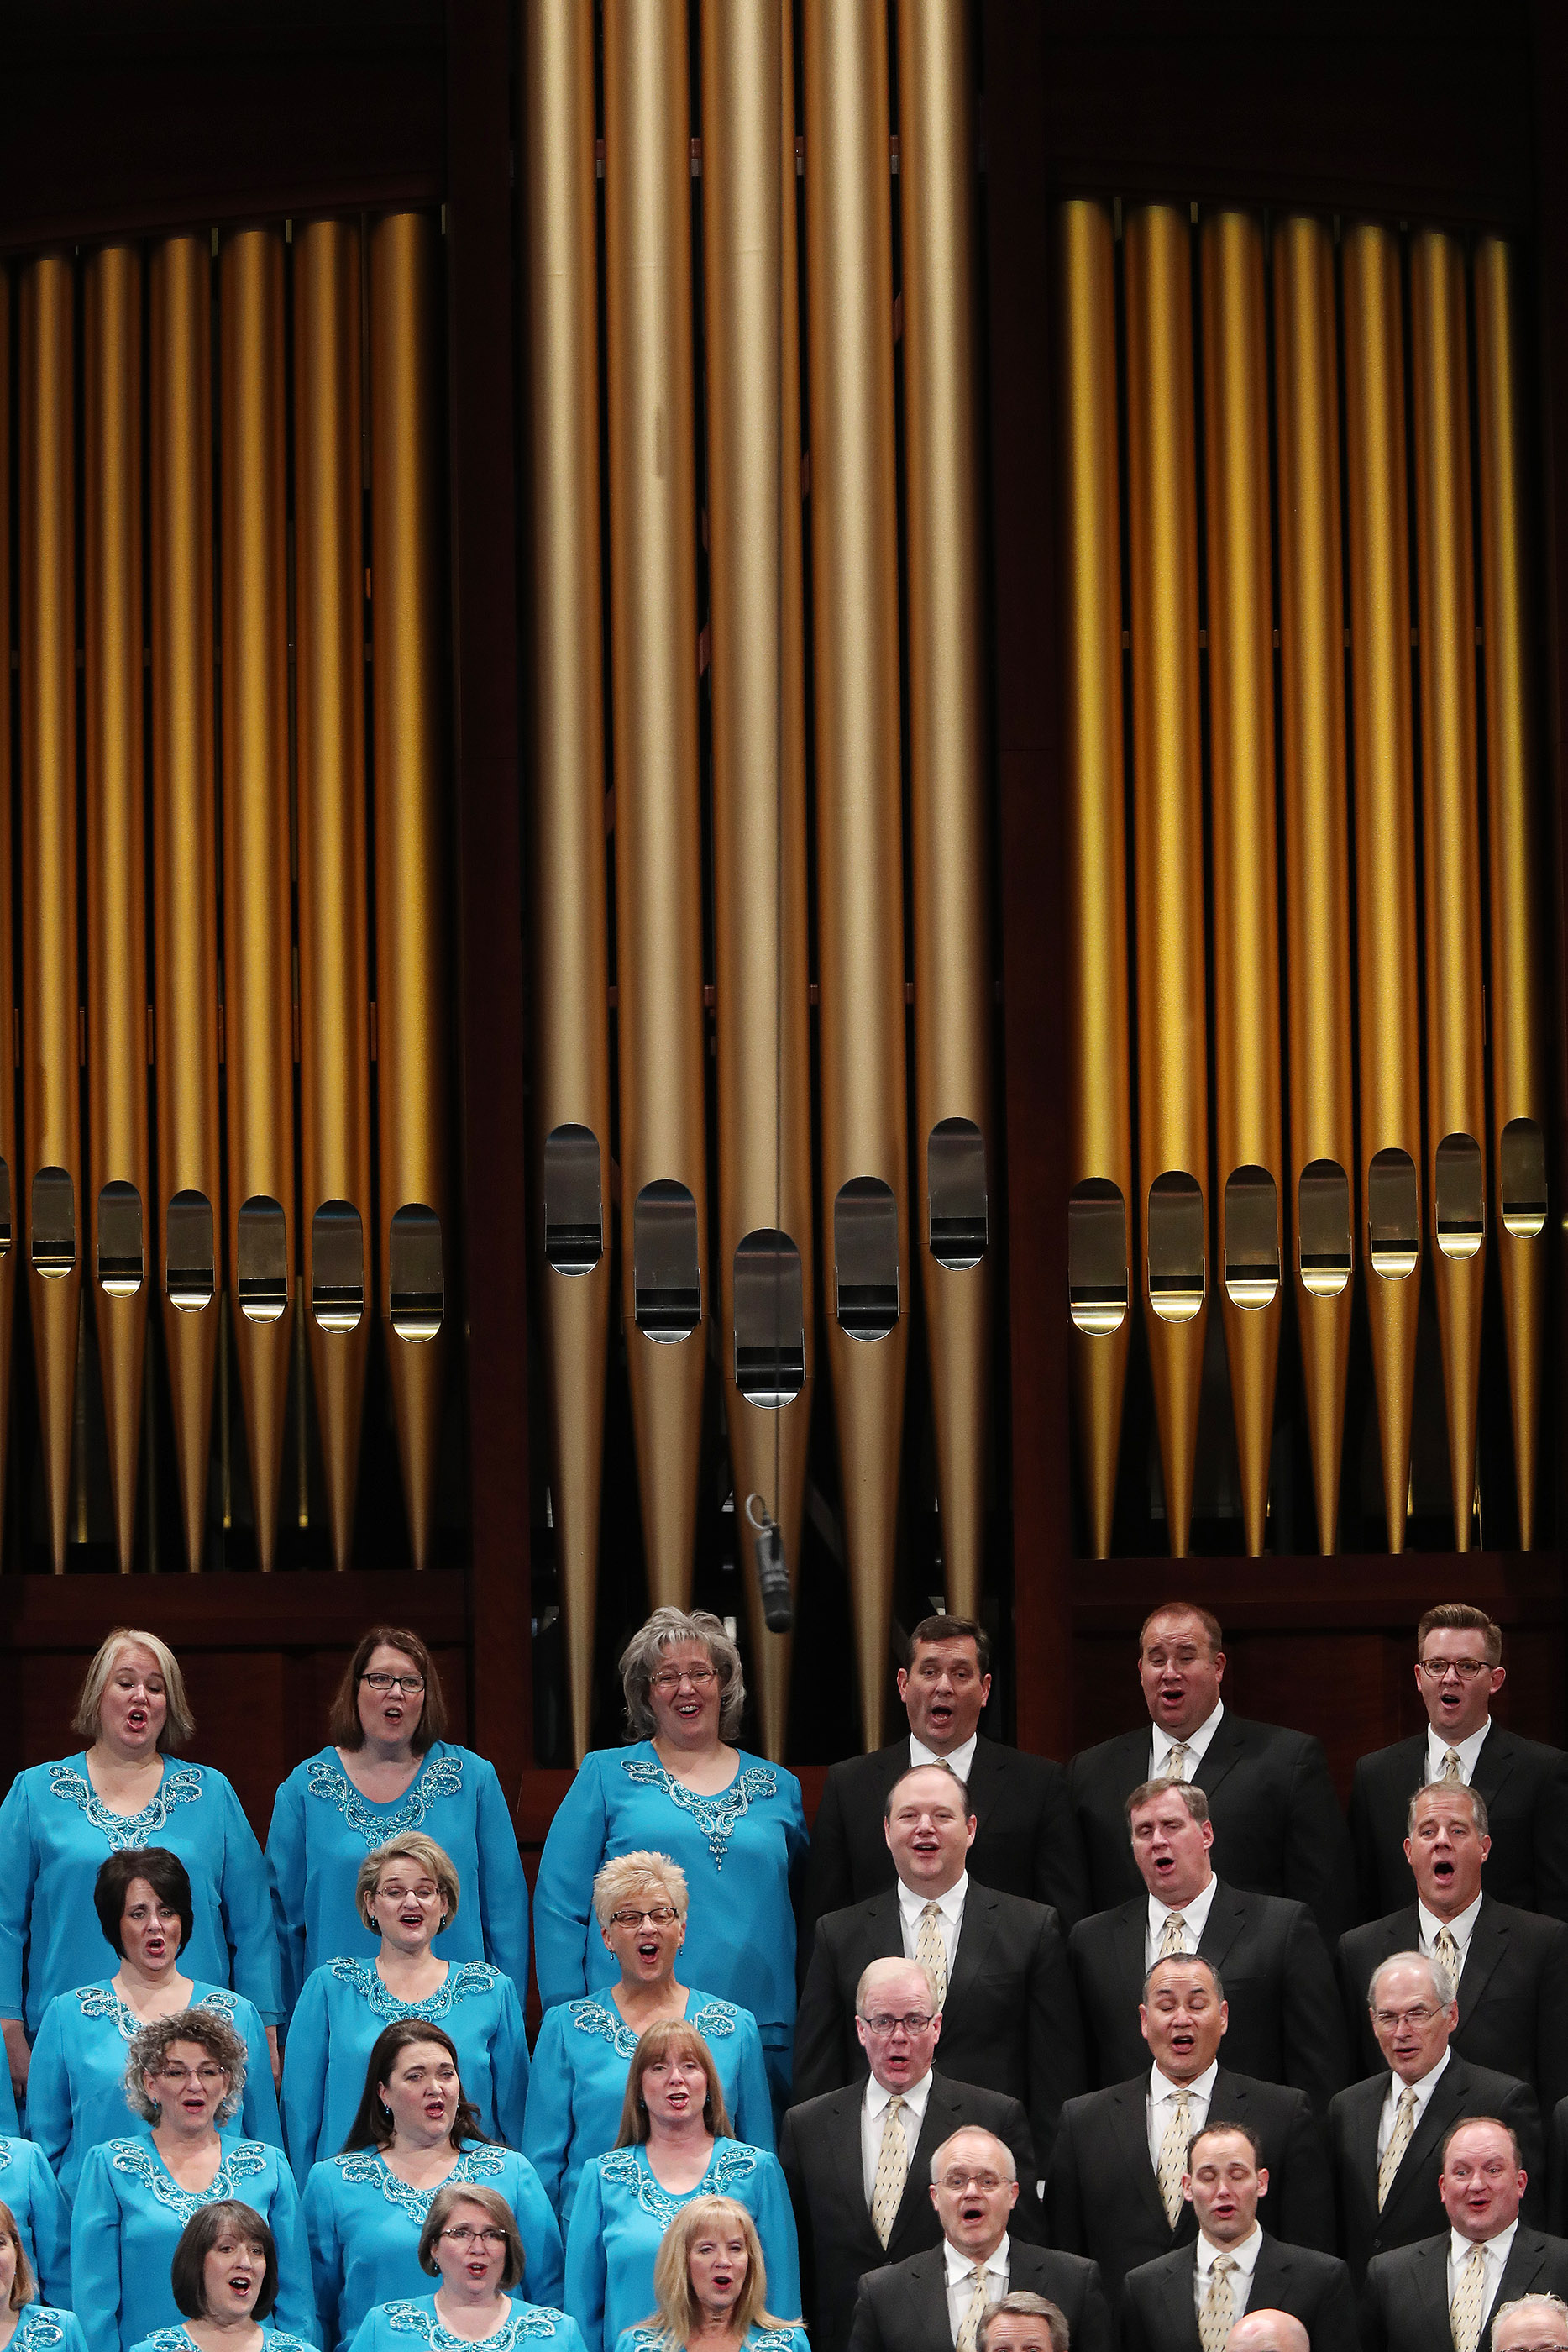 The Tabernacle Choir at Temple Square sings during the 188th Semiannual General Conference of The Church of Jesus Christ of Latter-day Saints in Salt Lake City on Sunday, Oct. 7, 2018.